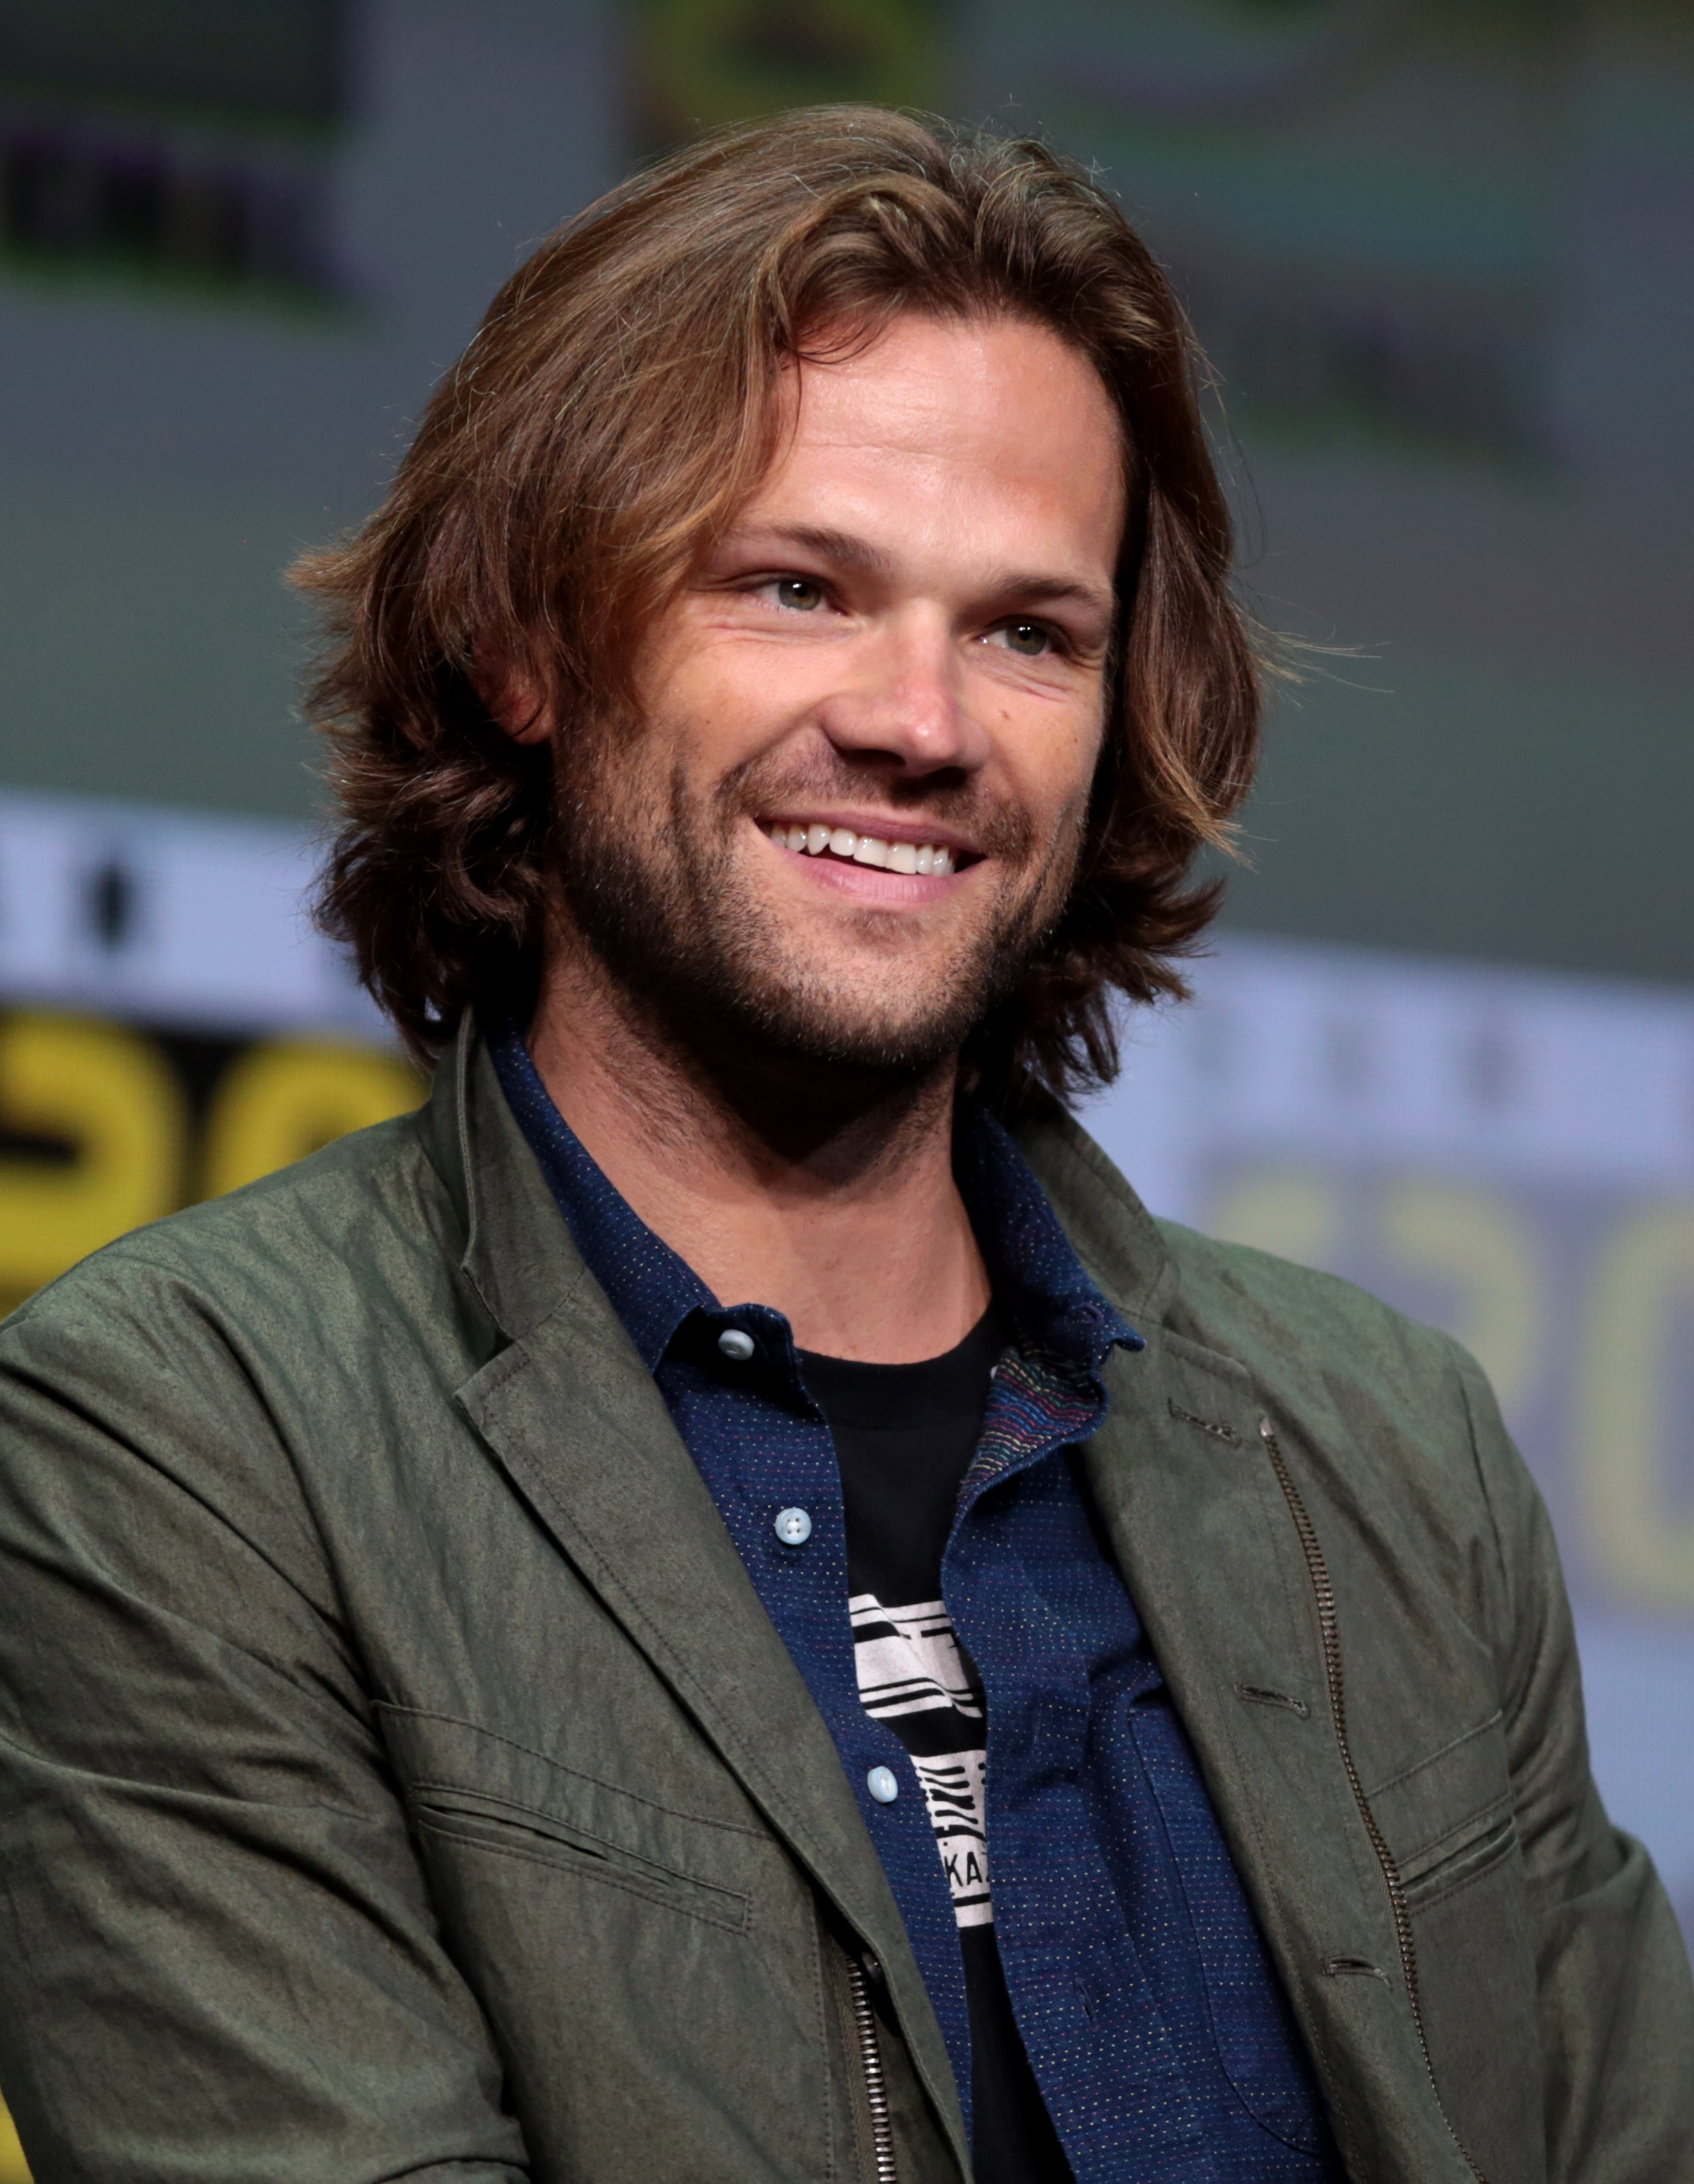 The 36-year old son of father (?) and mother(?) Jared Padalecki in 2018 photo. Jared Padalecki earned a  million dollar salary - leaving the net worth at 5 million in 2018